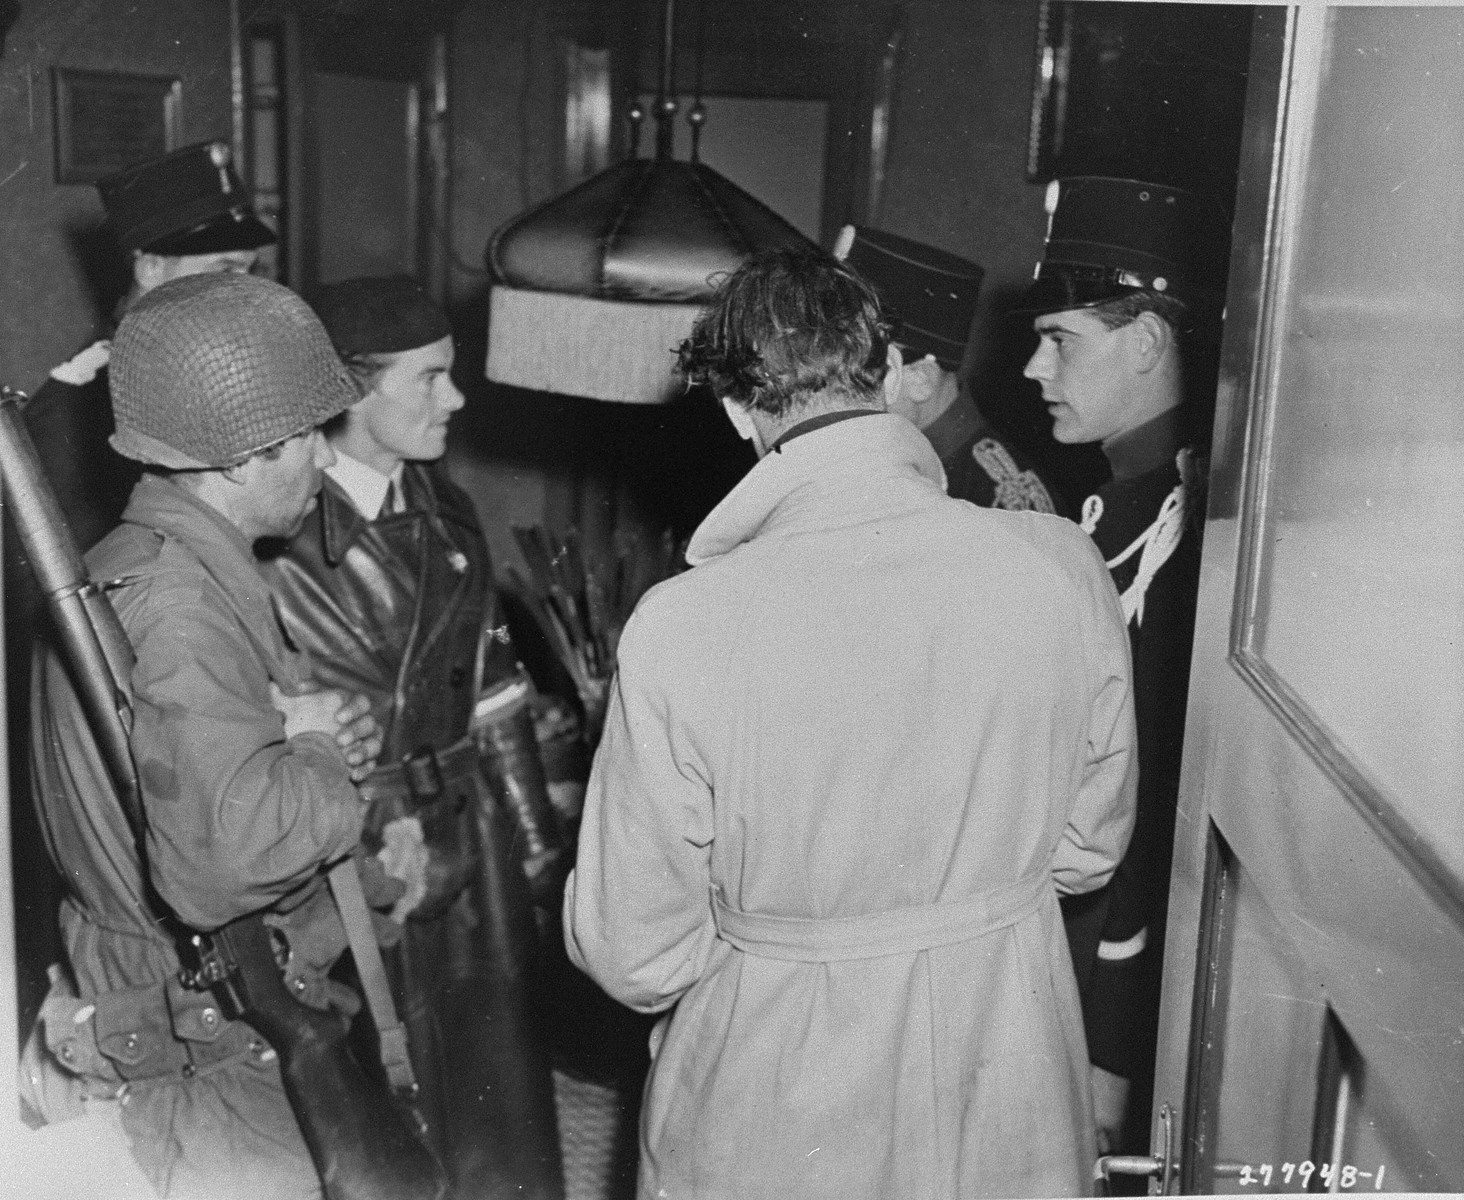 Members of the Dutch resistance, the Dutch police, and an American soldier search for uniforms and weapons belonging to Dutchmen suspected of collaborating with the Germans during the occupation.